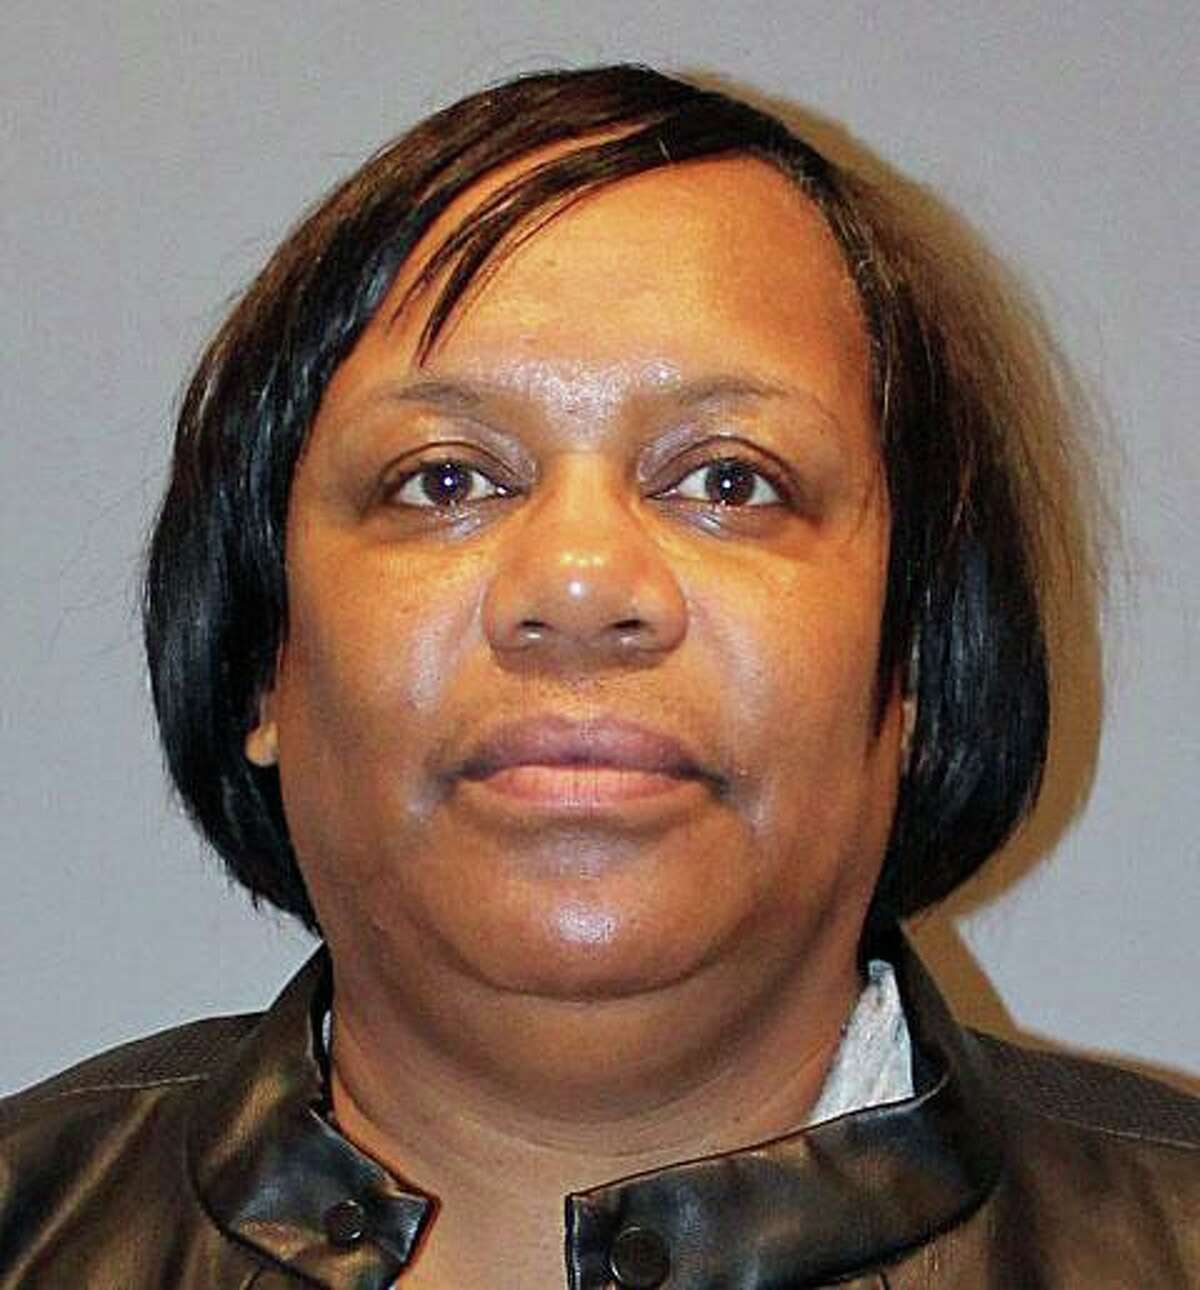 Betty Chappell, of Bridgeport, was charged with second-degree forgery and statement statement in absentee balloting in Stratford in 2018. Chappell was a campaign worker for state Sen. Marilyn Moore's mayoral primary run in Bridgeport